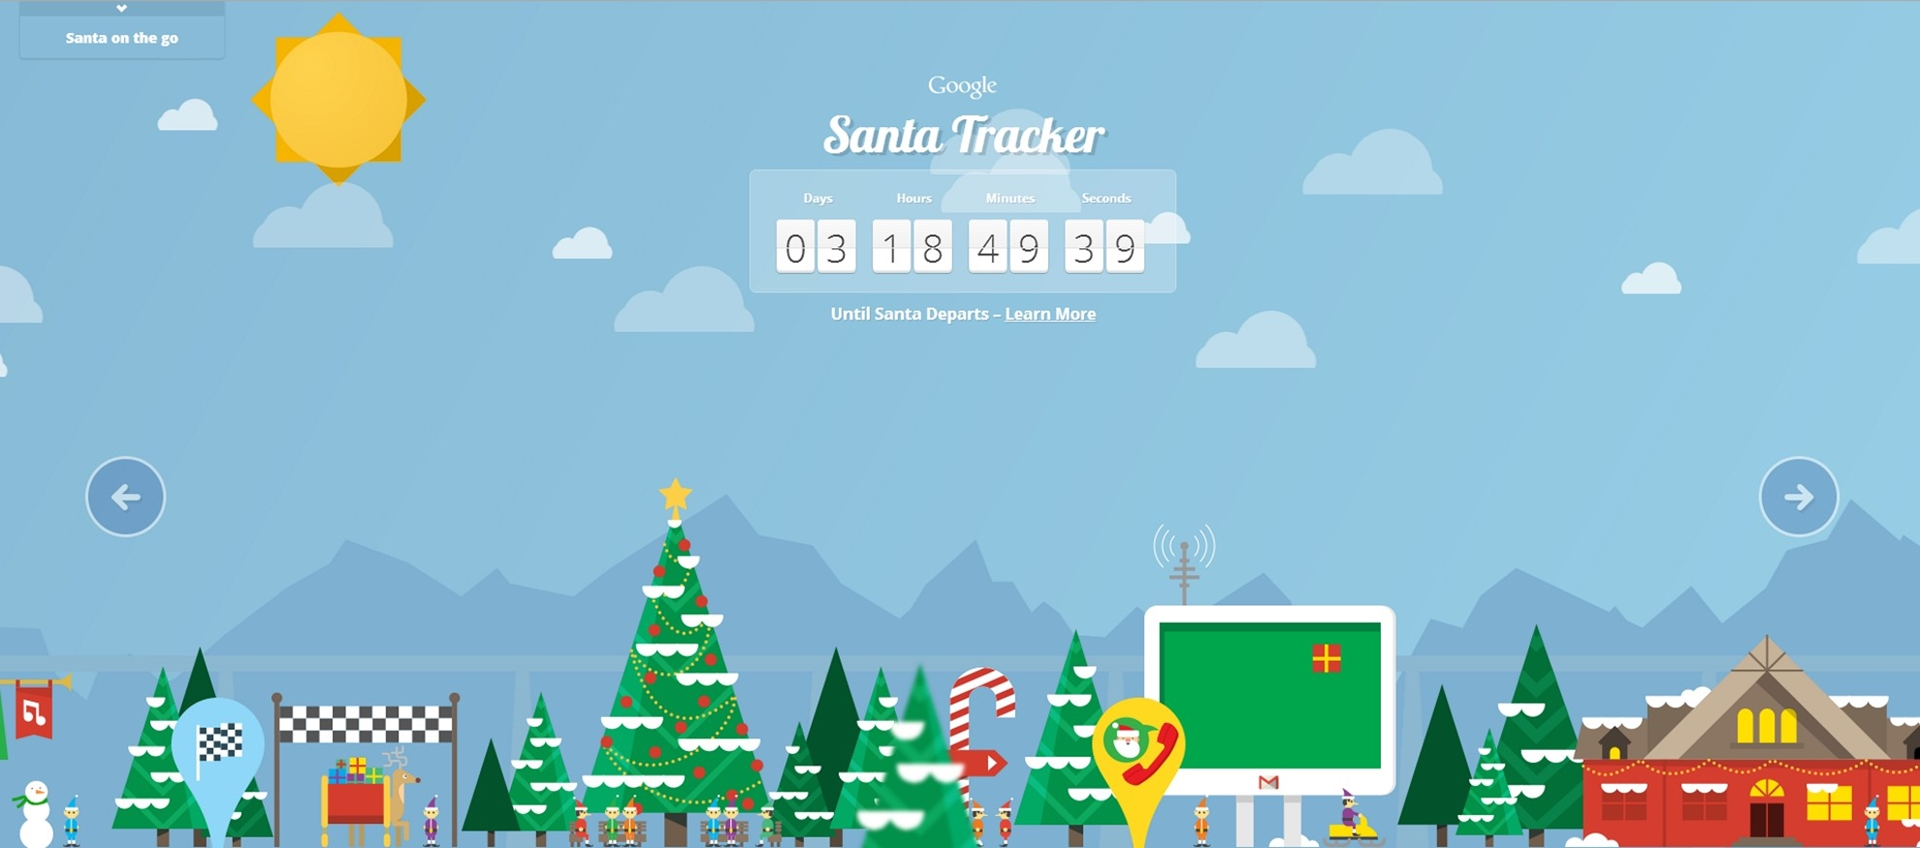 Google Santa Tracker Countdown